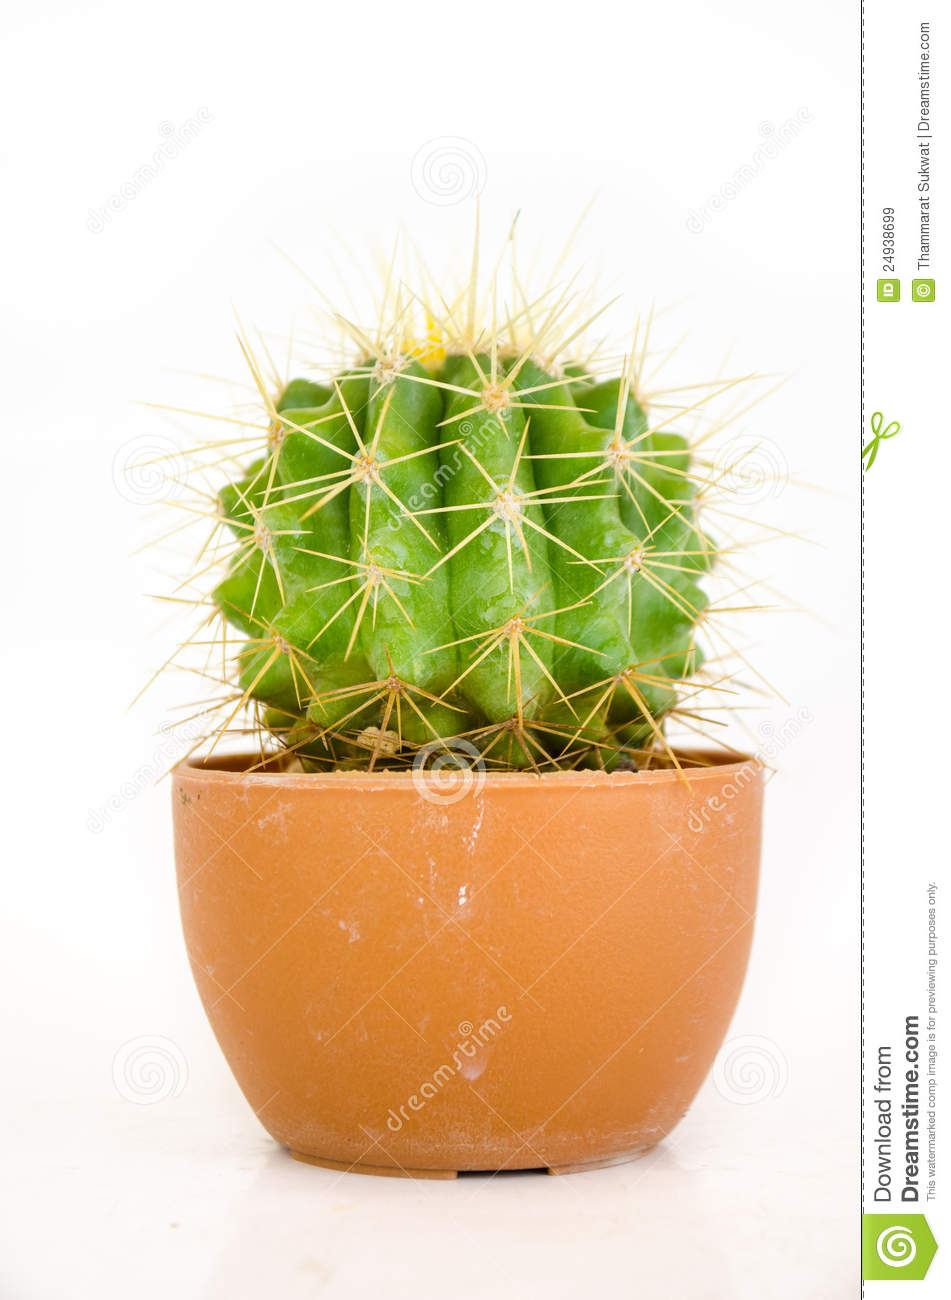 small cactus in pot stock image image of thorn tree 24938699. Black Bedroom Furniture Sets. Home Design Ideas